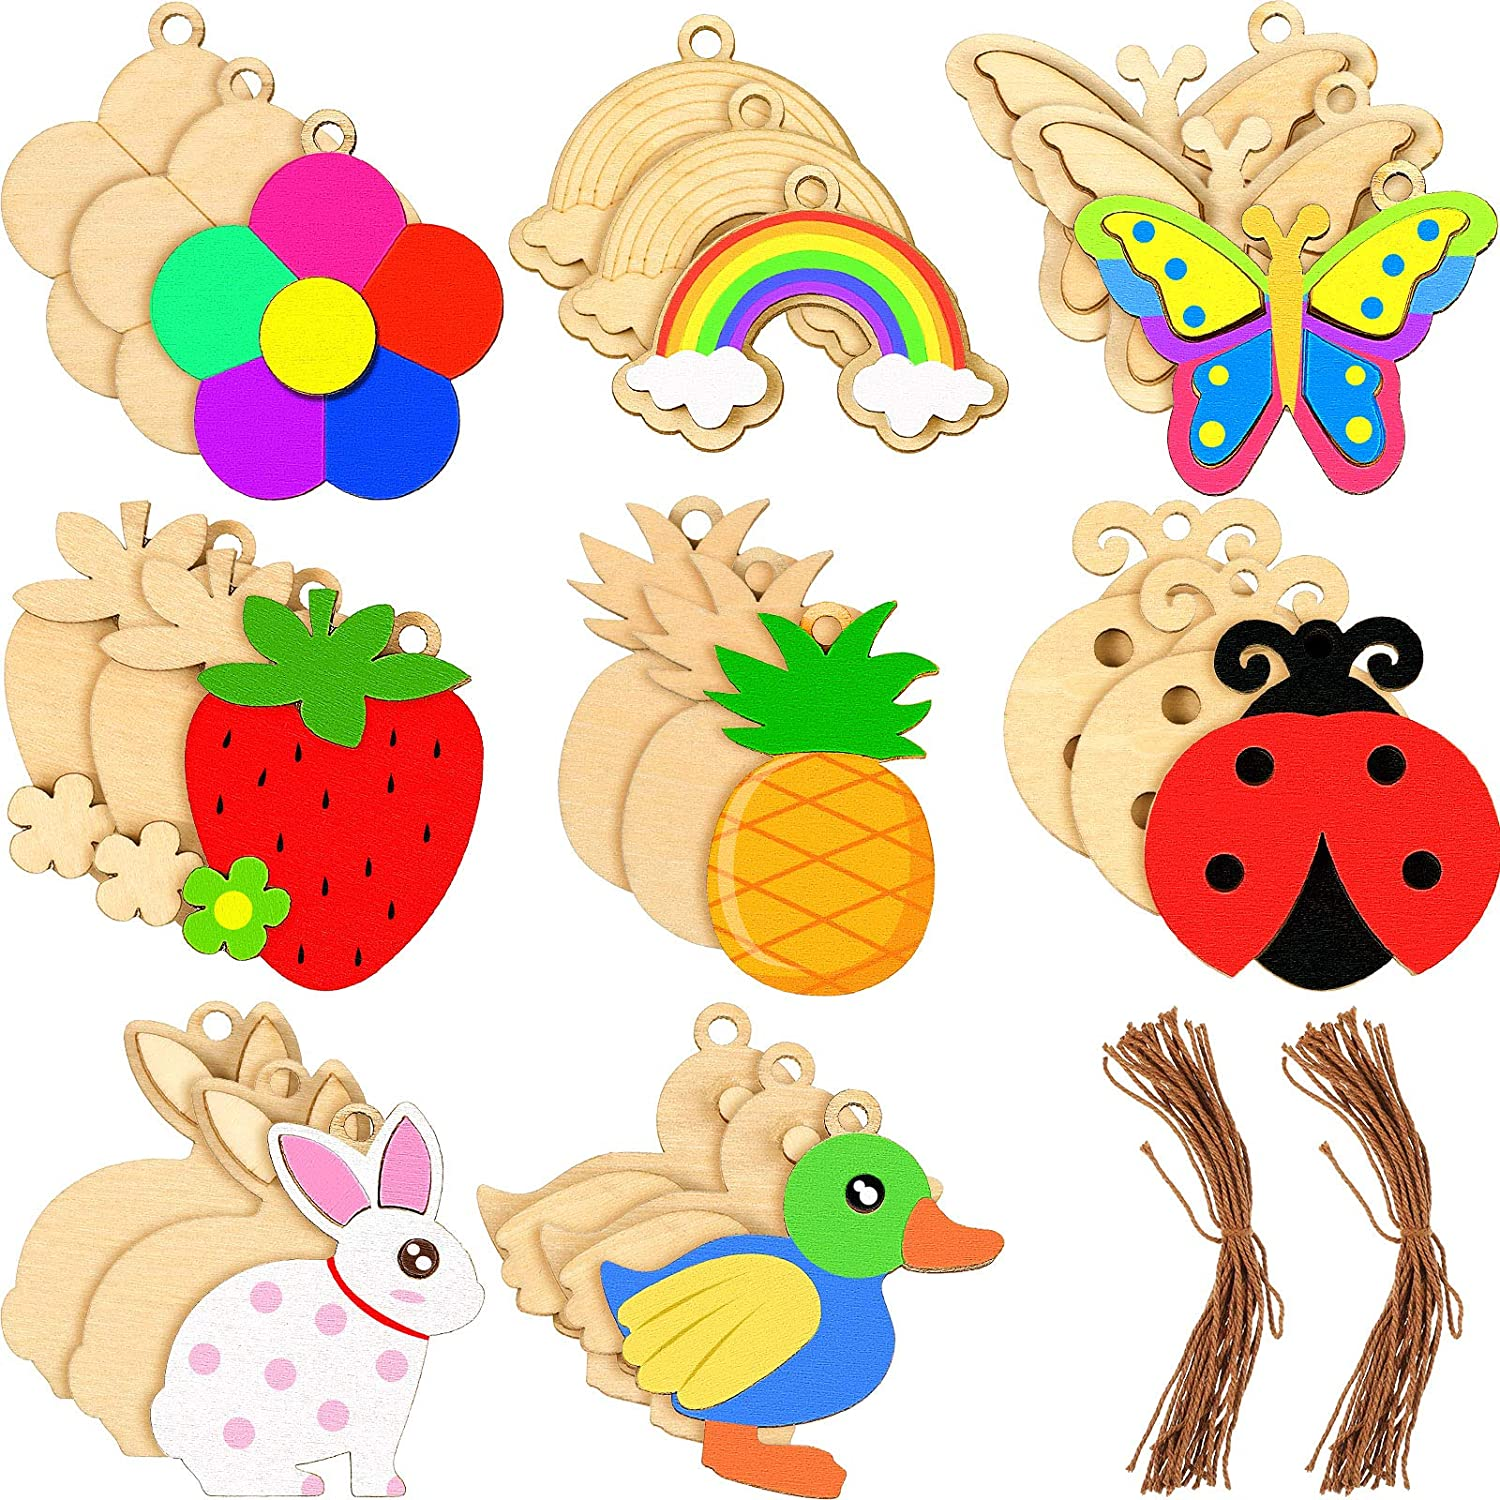 24 Pieces Summer Unfinished Wood Cutouts Animals and Fruit Shape Unfinished Wooden Ornaments with Rope, Wooden Paint Crafts for Kids Home Decoration Craft Project, 8 Styles